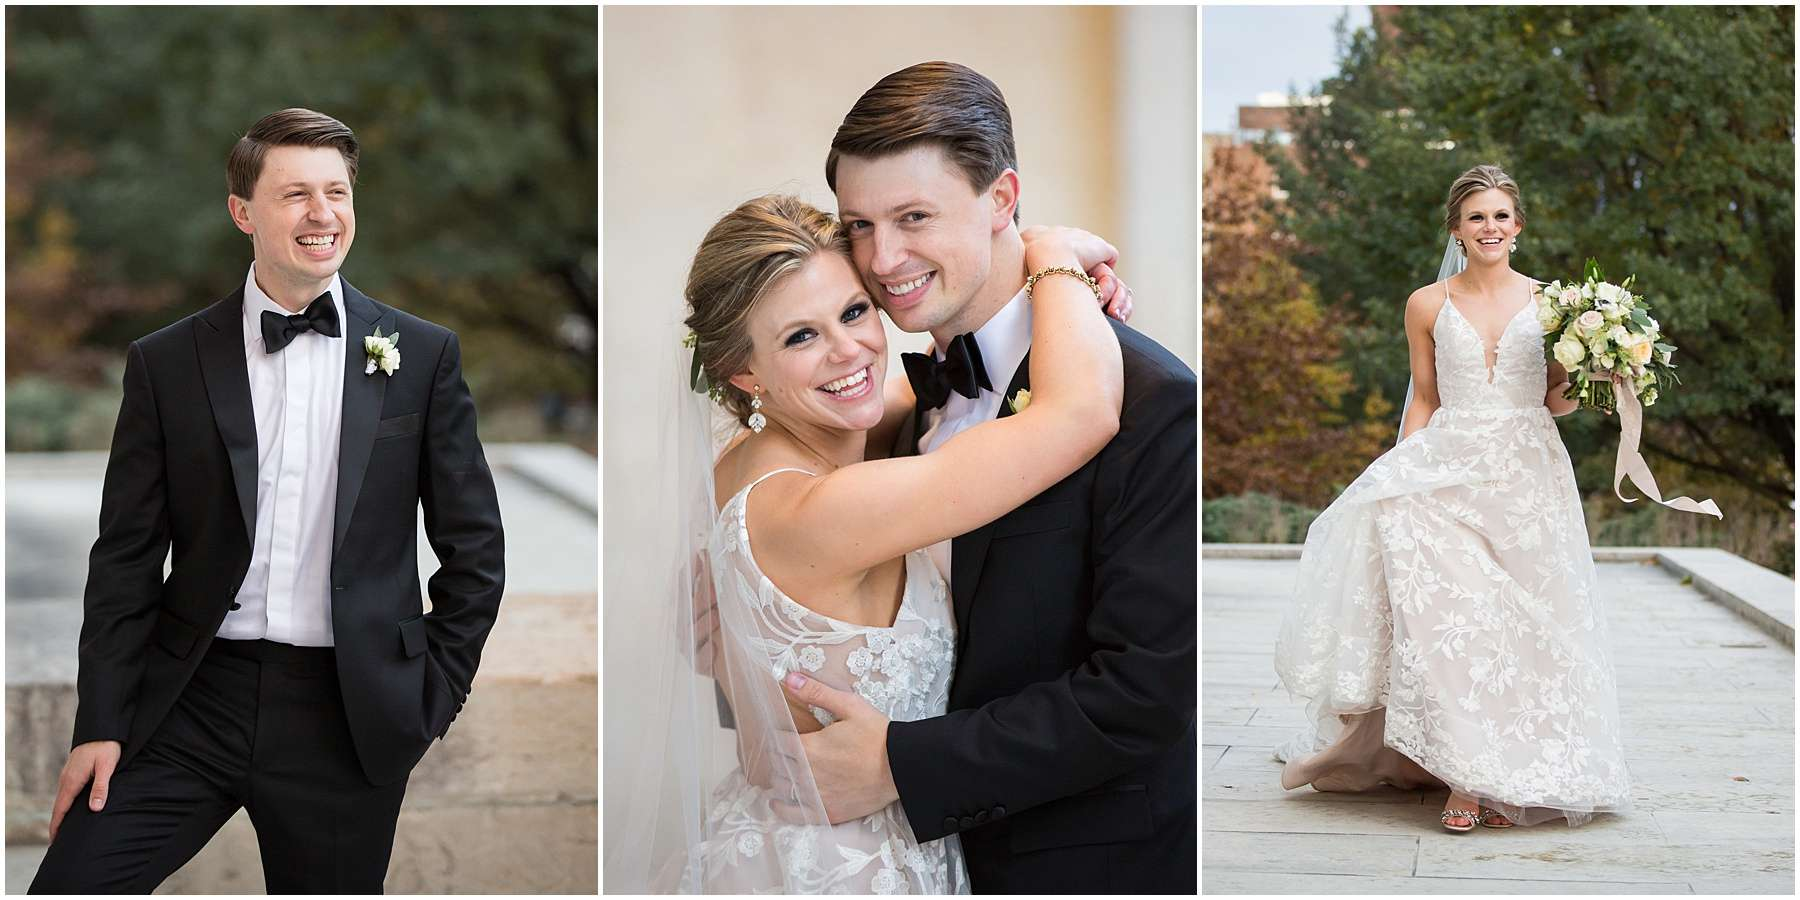 Wedding at the Ohio Statehouse | Columbus Ohio Weddings 158